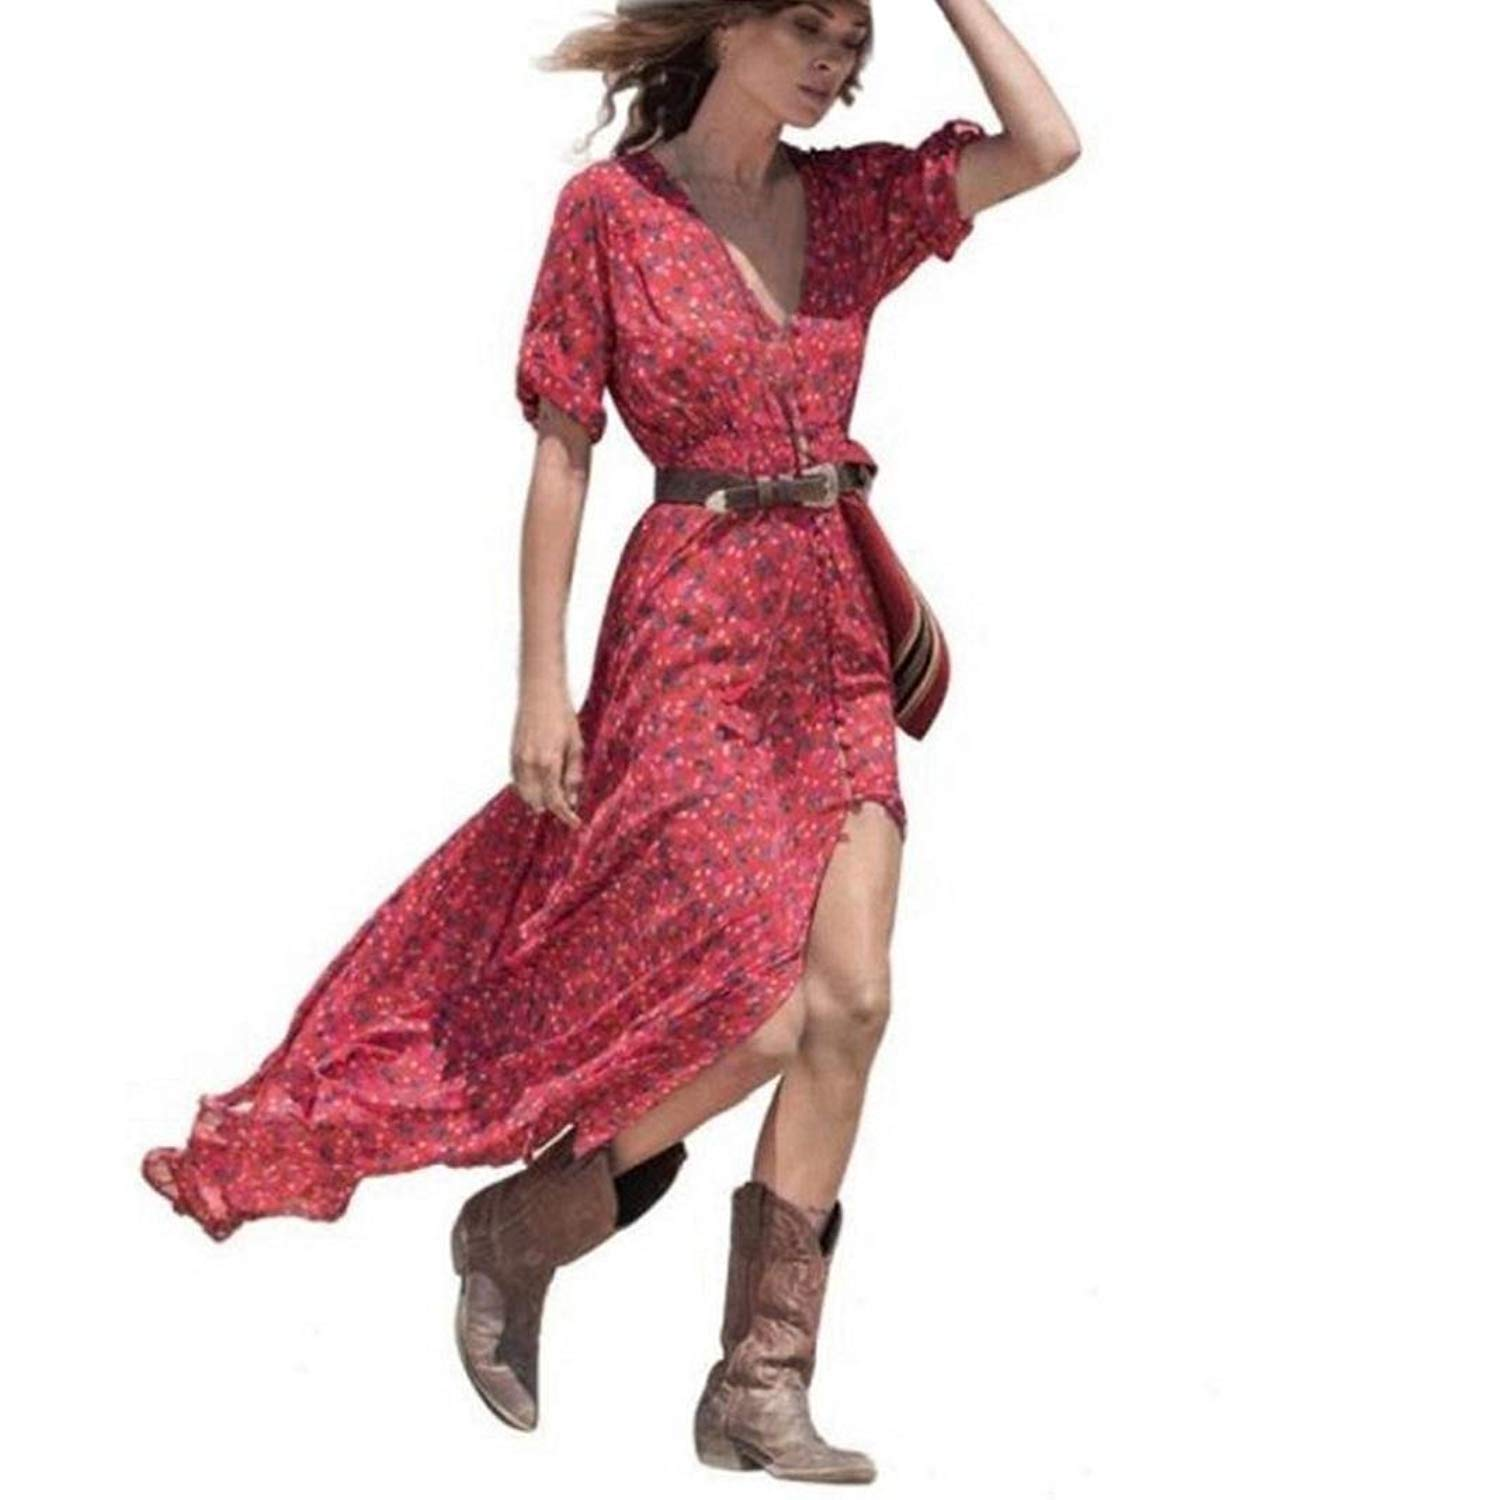 ABASSKY Dresses for Women, Summer Boho Chiffon Floral Party Beach Long Maxi Dress (Red, M)